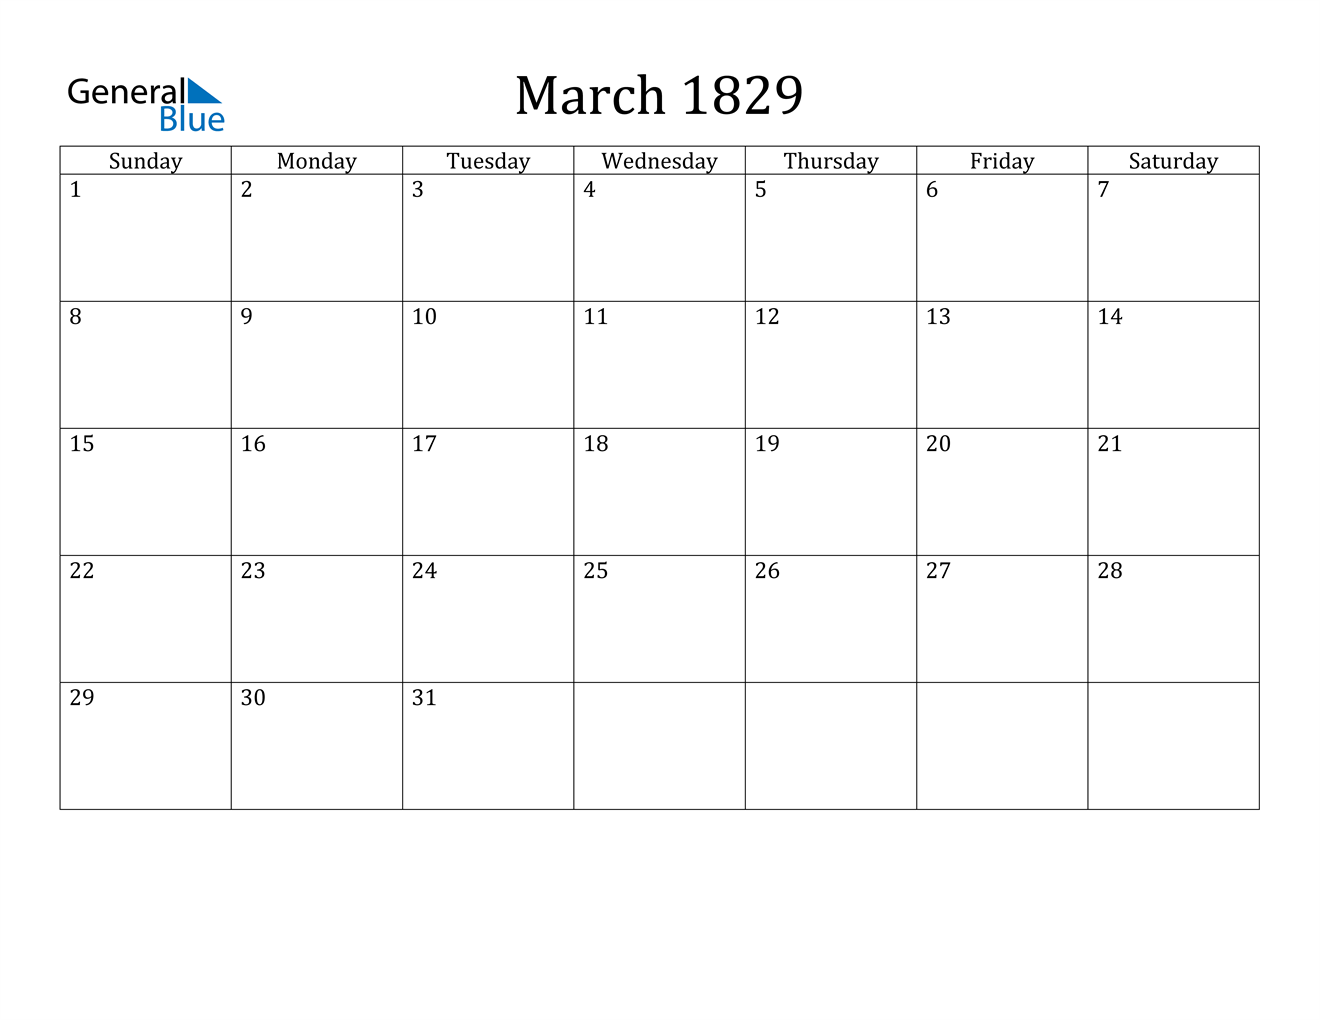 Image of March 1829 Calendar